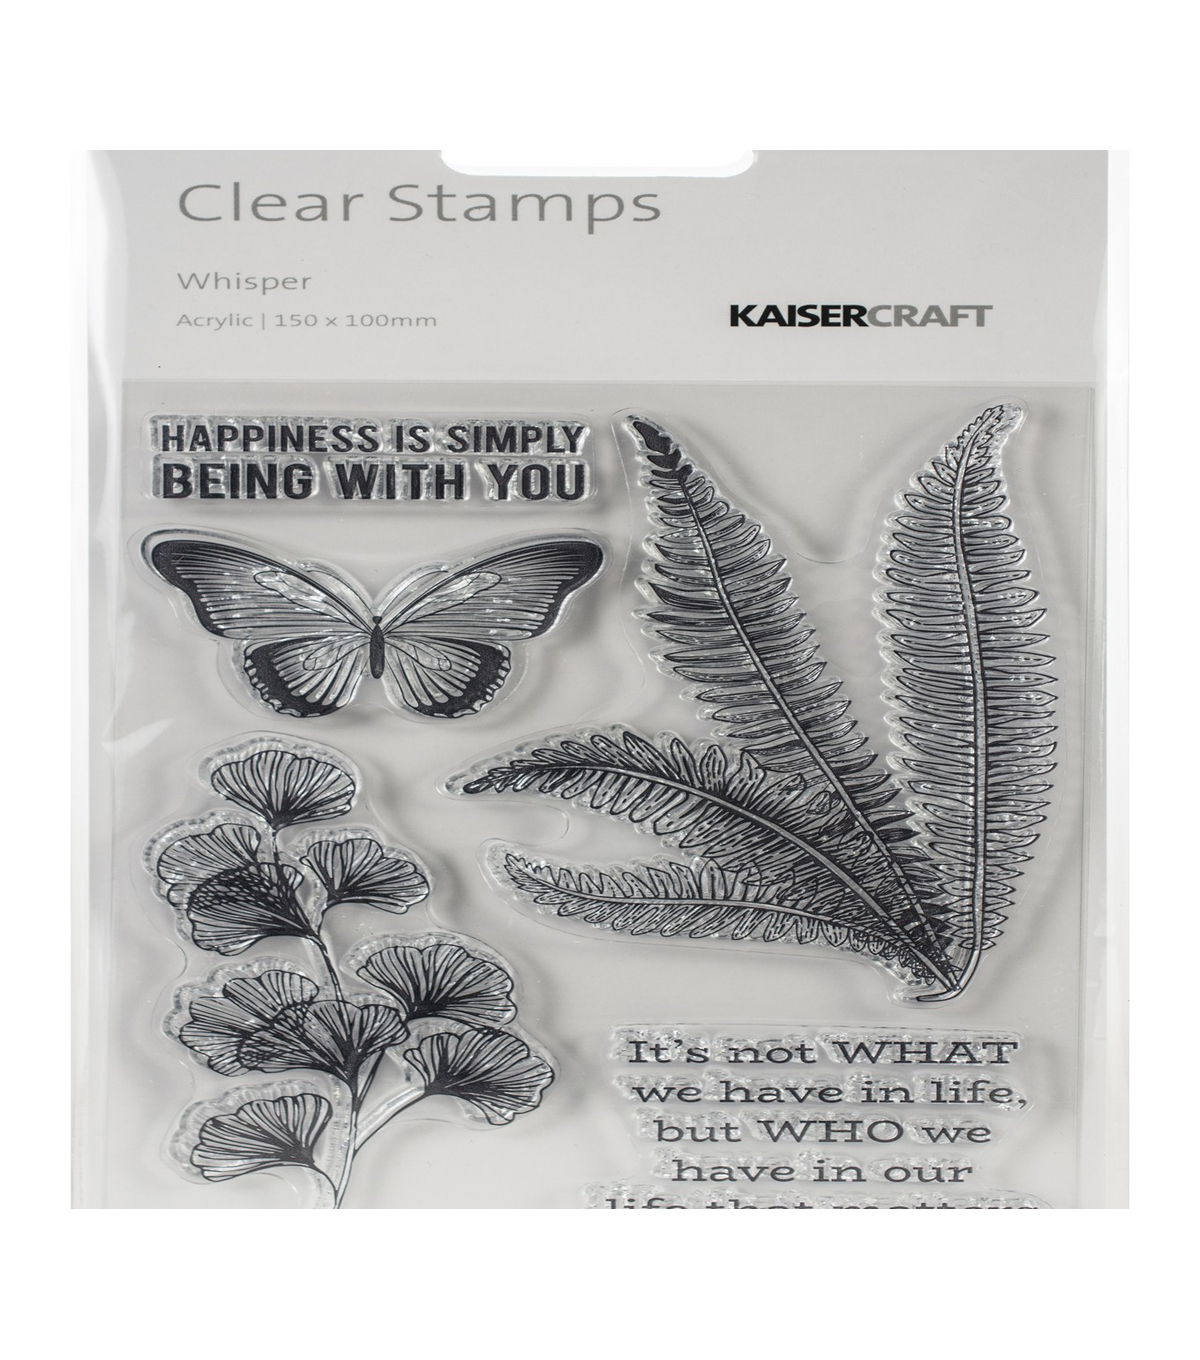 Kaisercraft Whisper 5 pk Clear Stamps